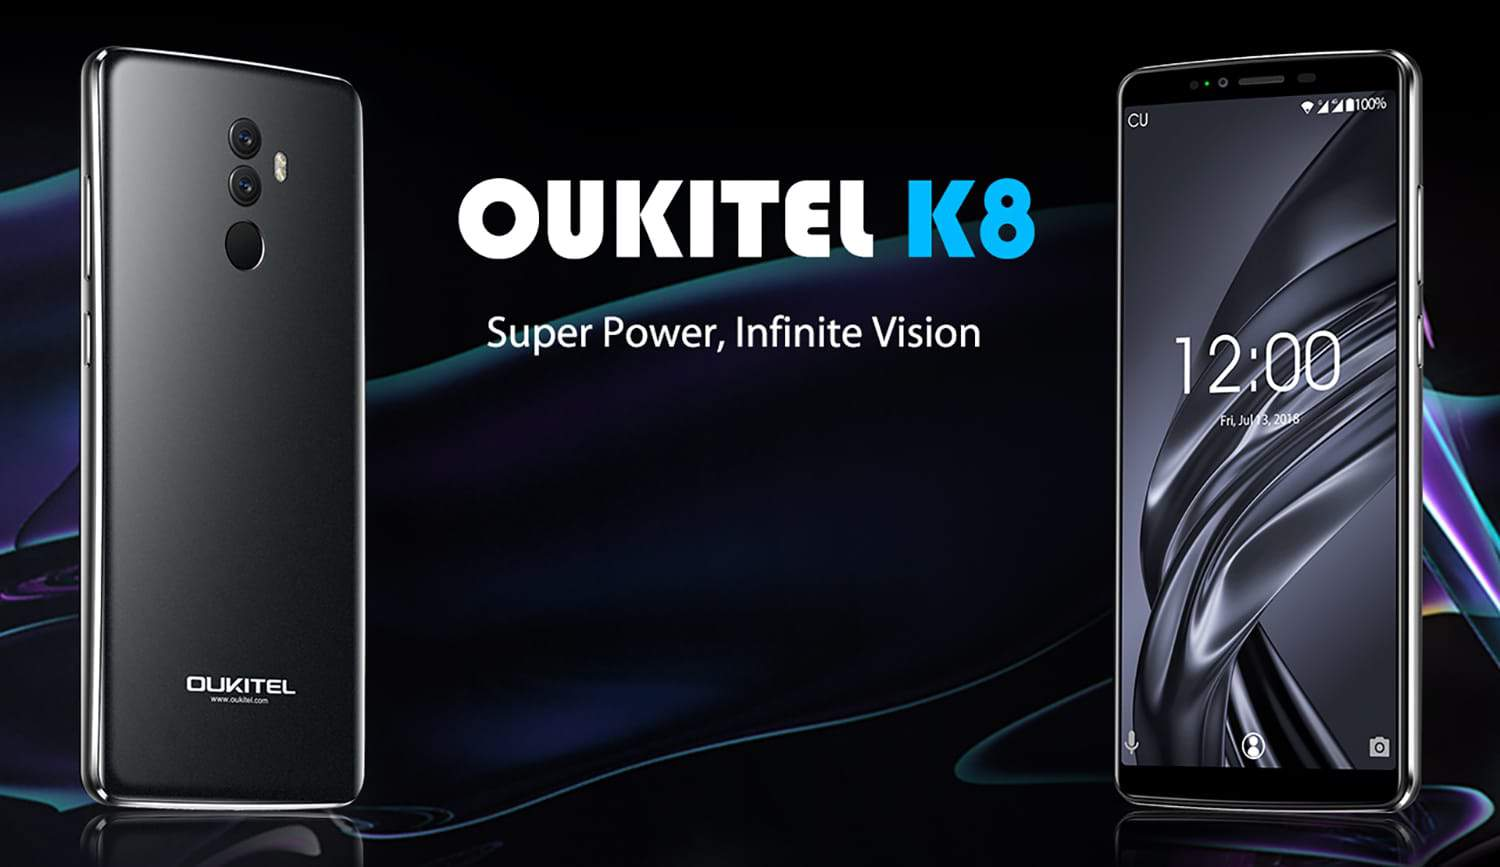 Unbox the Oukitel K8 Today